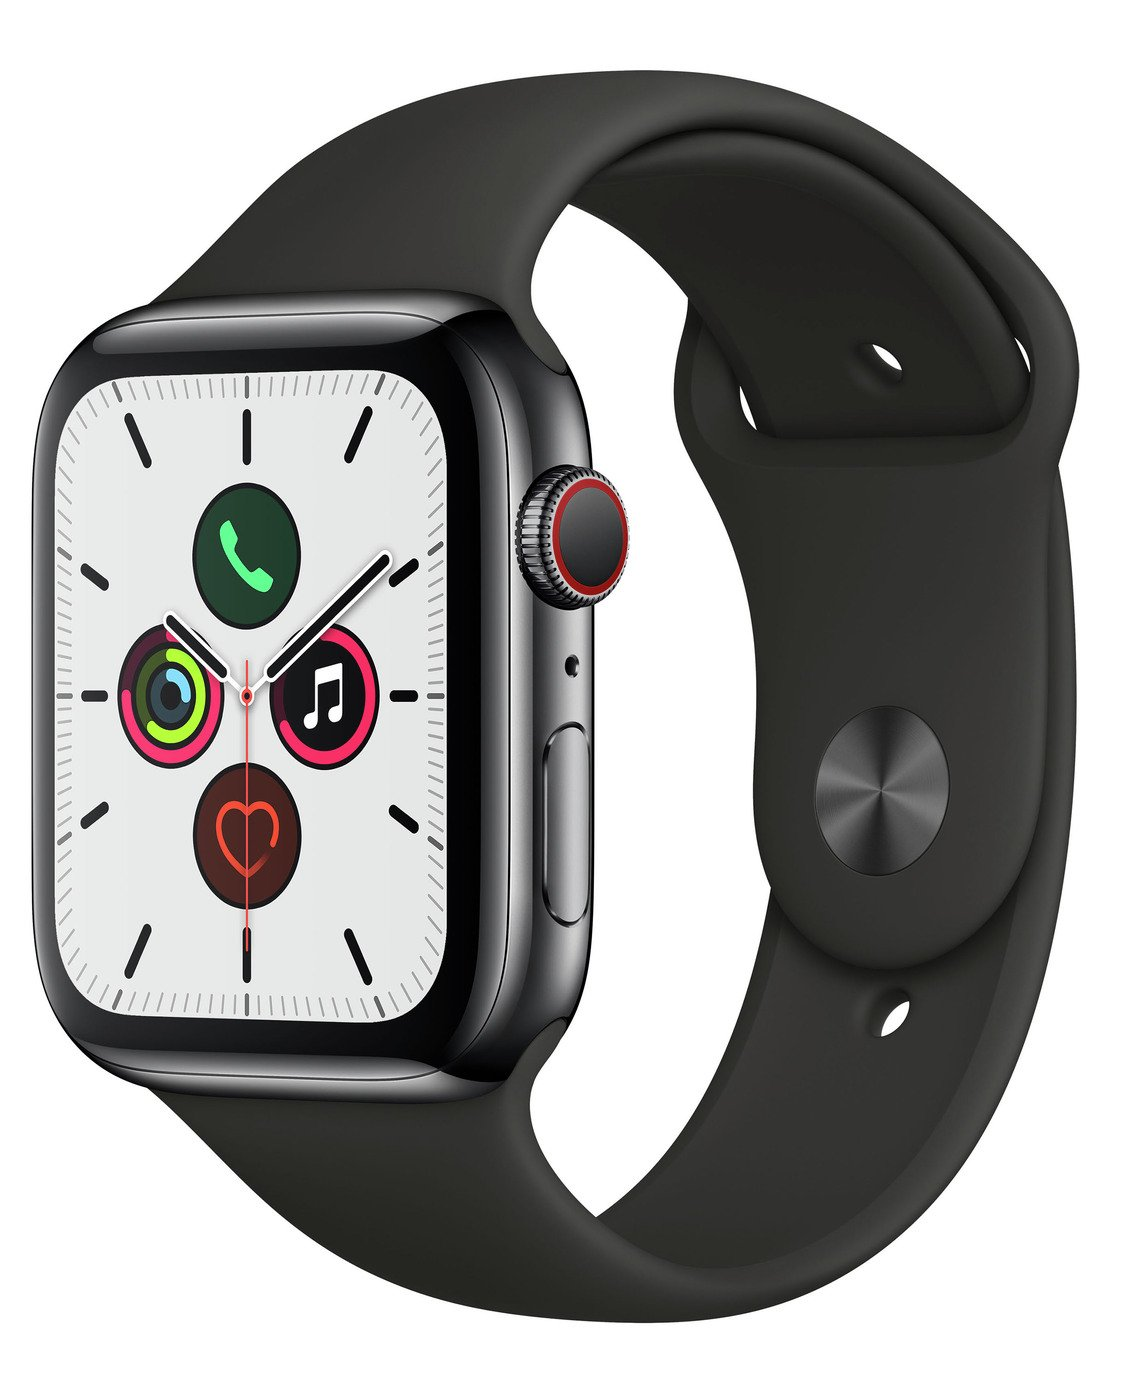 Apple Watch S5 Cellular 44mm Black S Steel / Black Band